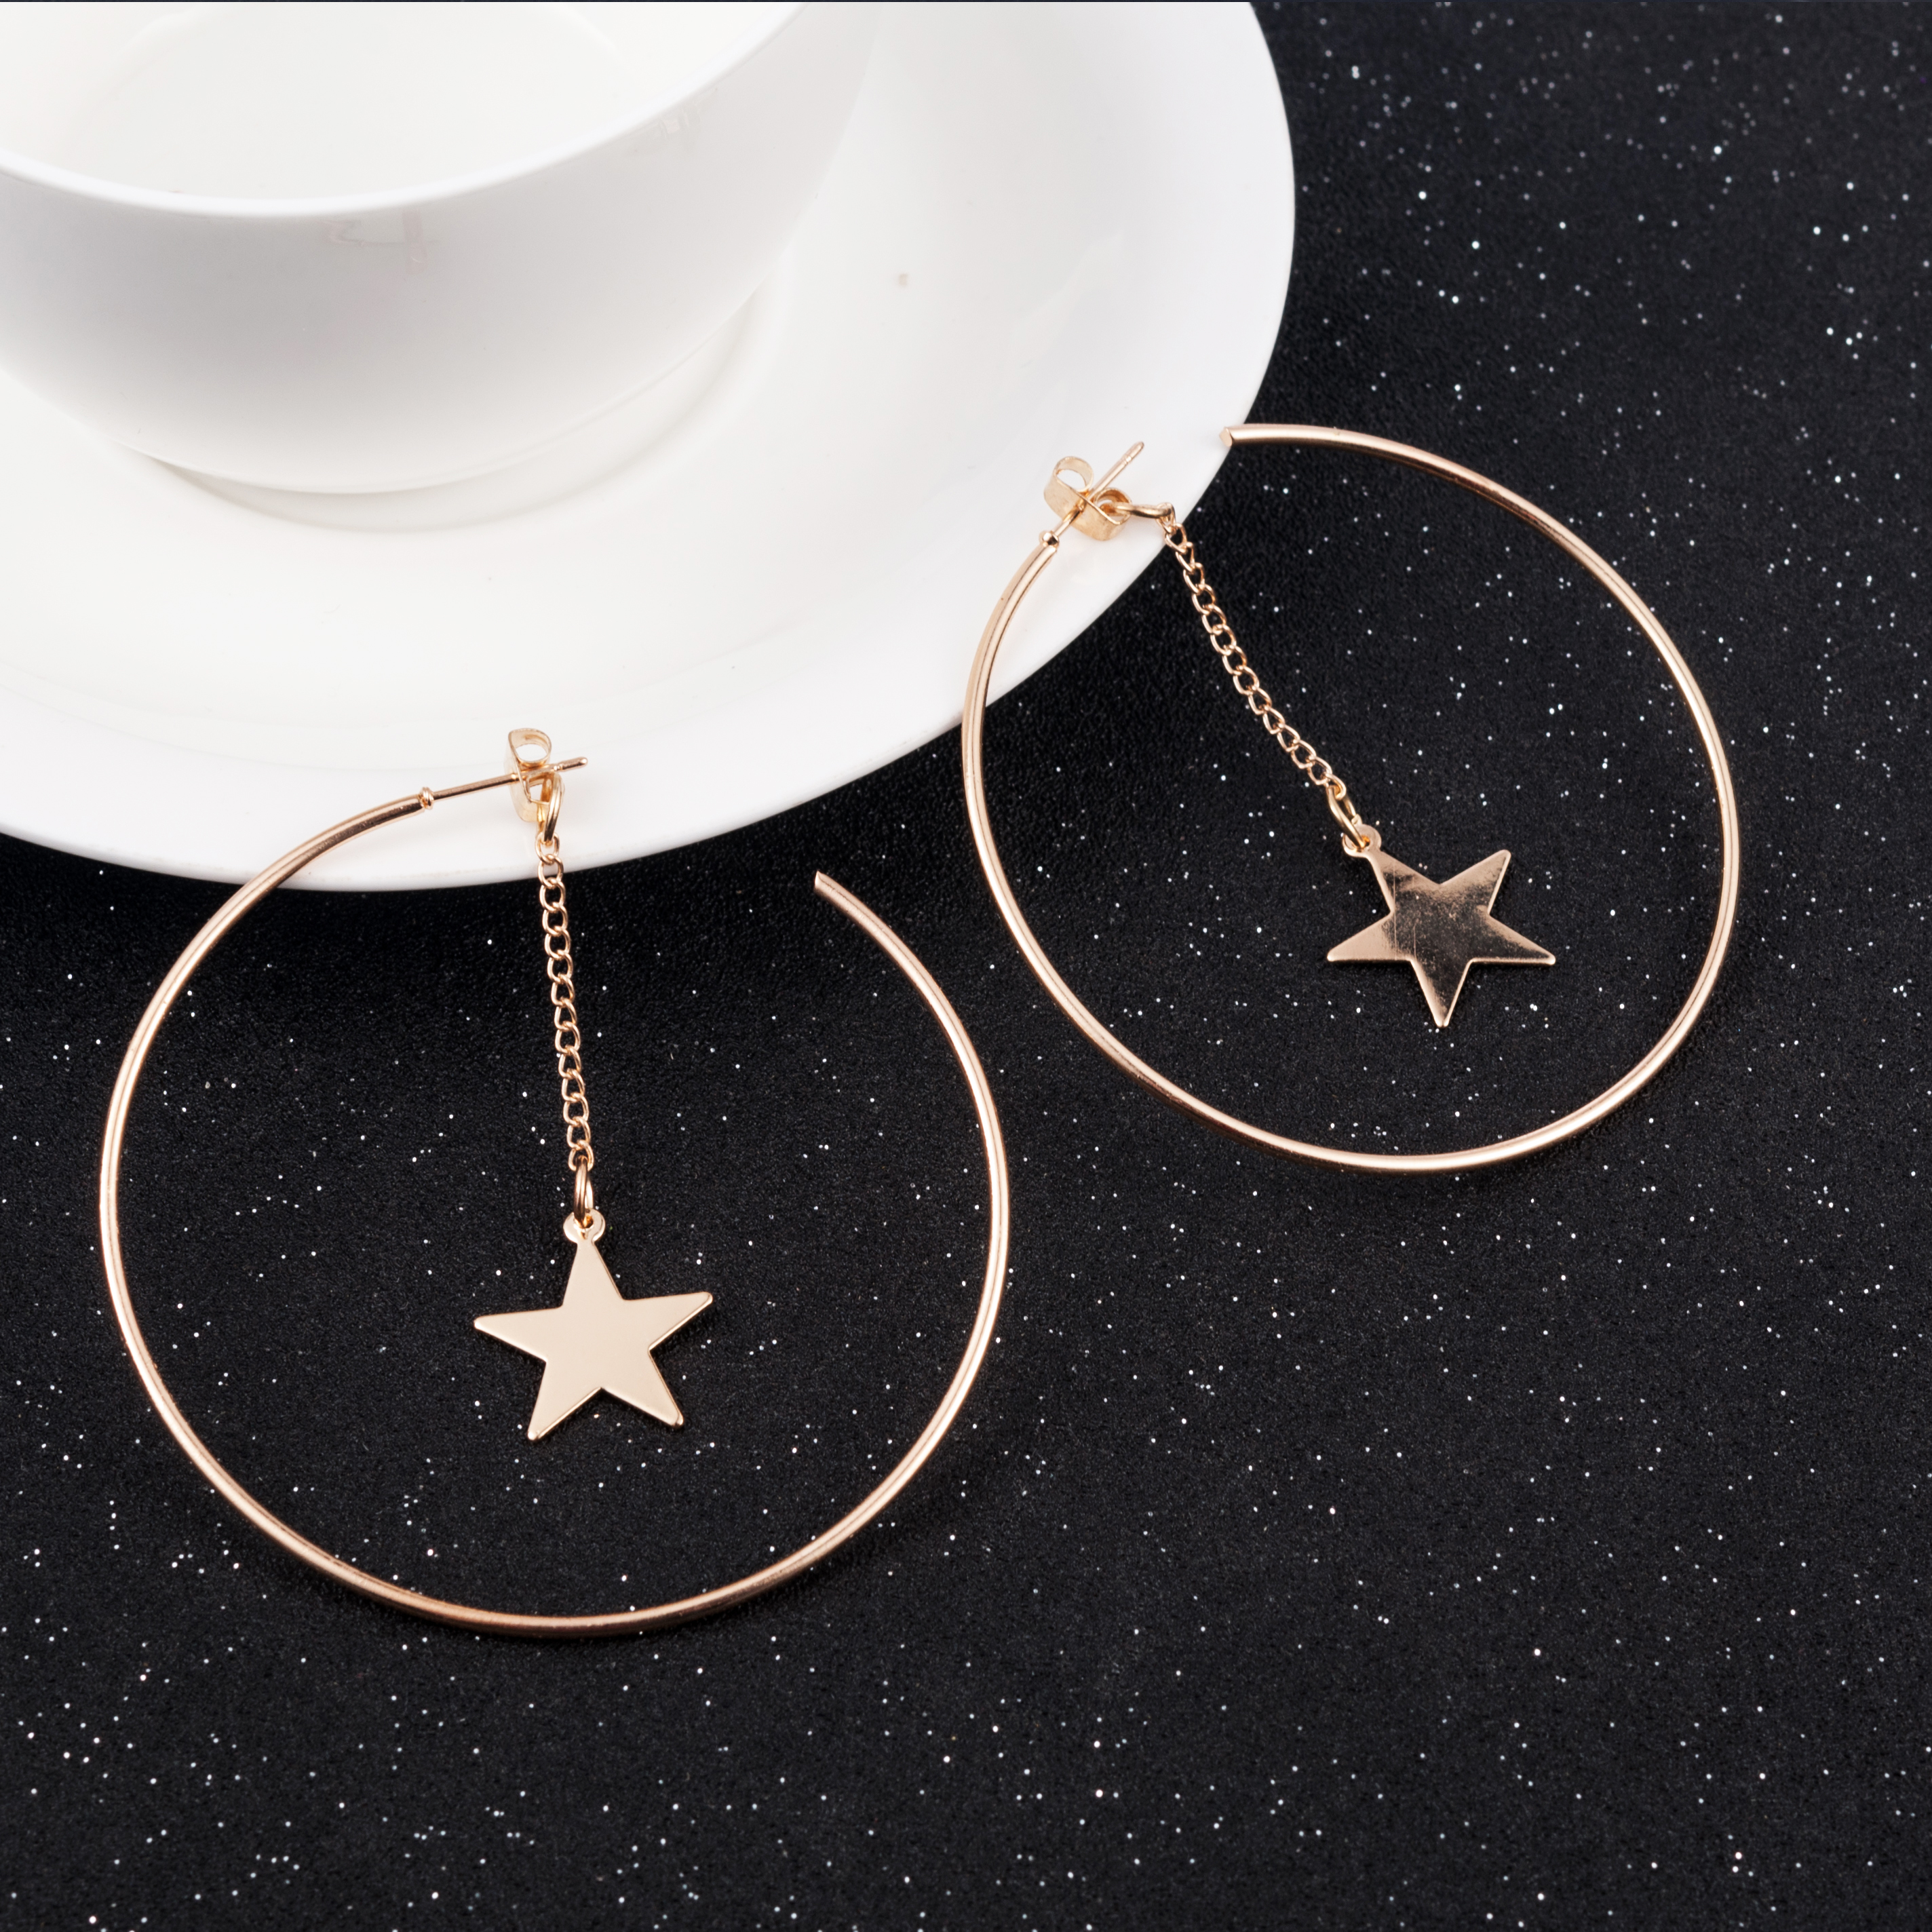 New Fashion Gold Color Big Hoop Star Chain Drop Dangle Earrings For Women Earrings Personality Fashion Boucle D'oreille Pendient